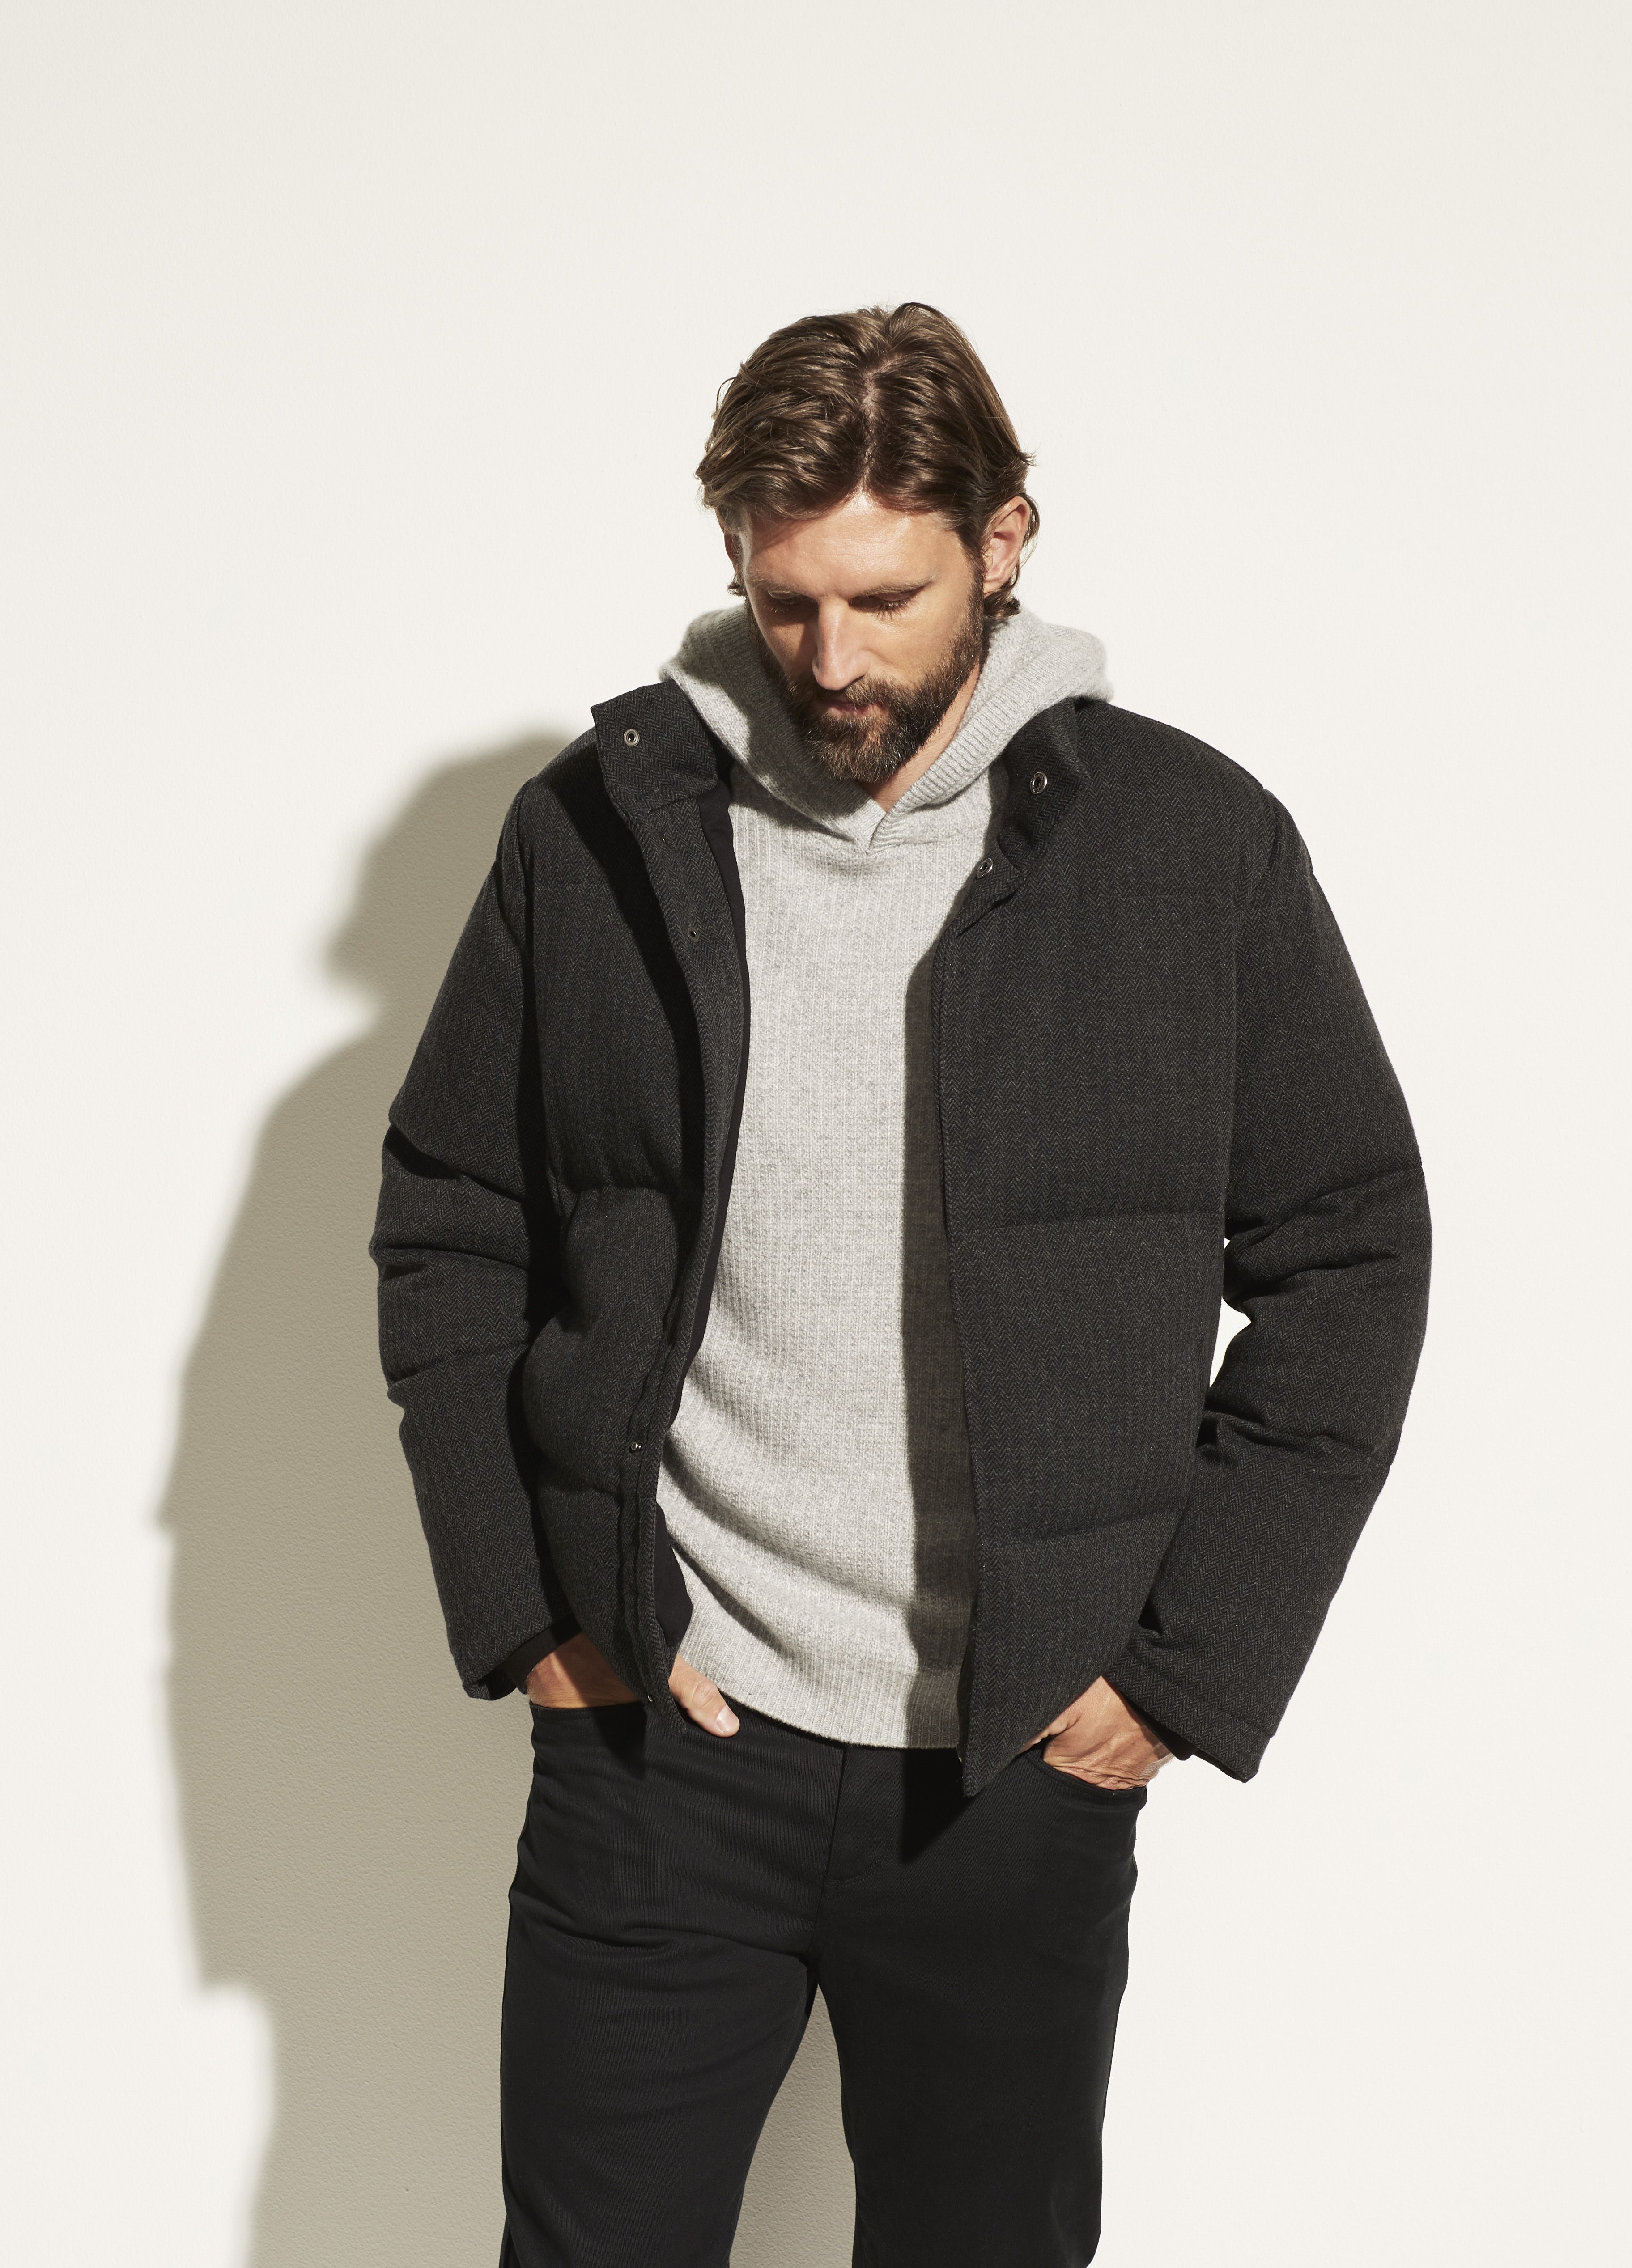 Herringbone Puffer Jacket For Men Puffer Jackets Quilted Puffer Jacket Mens Jackets [ 5071 x 3648 Pixel ]